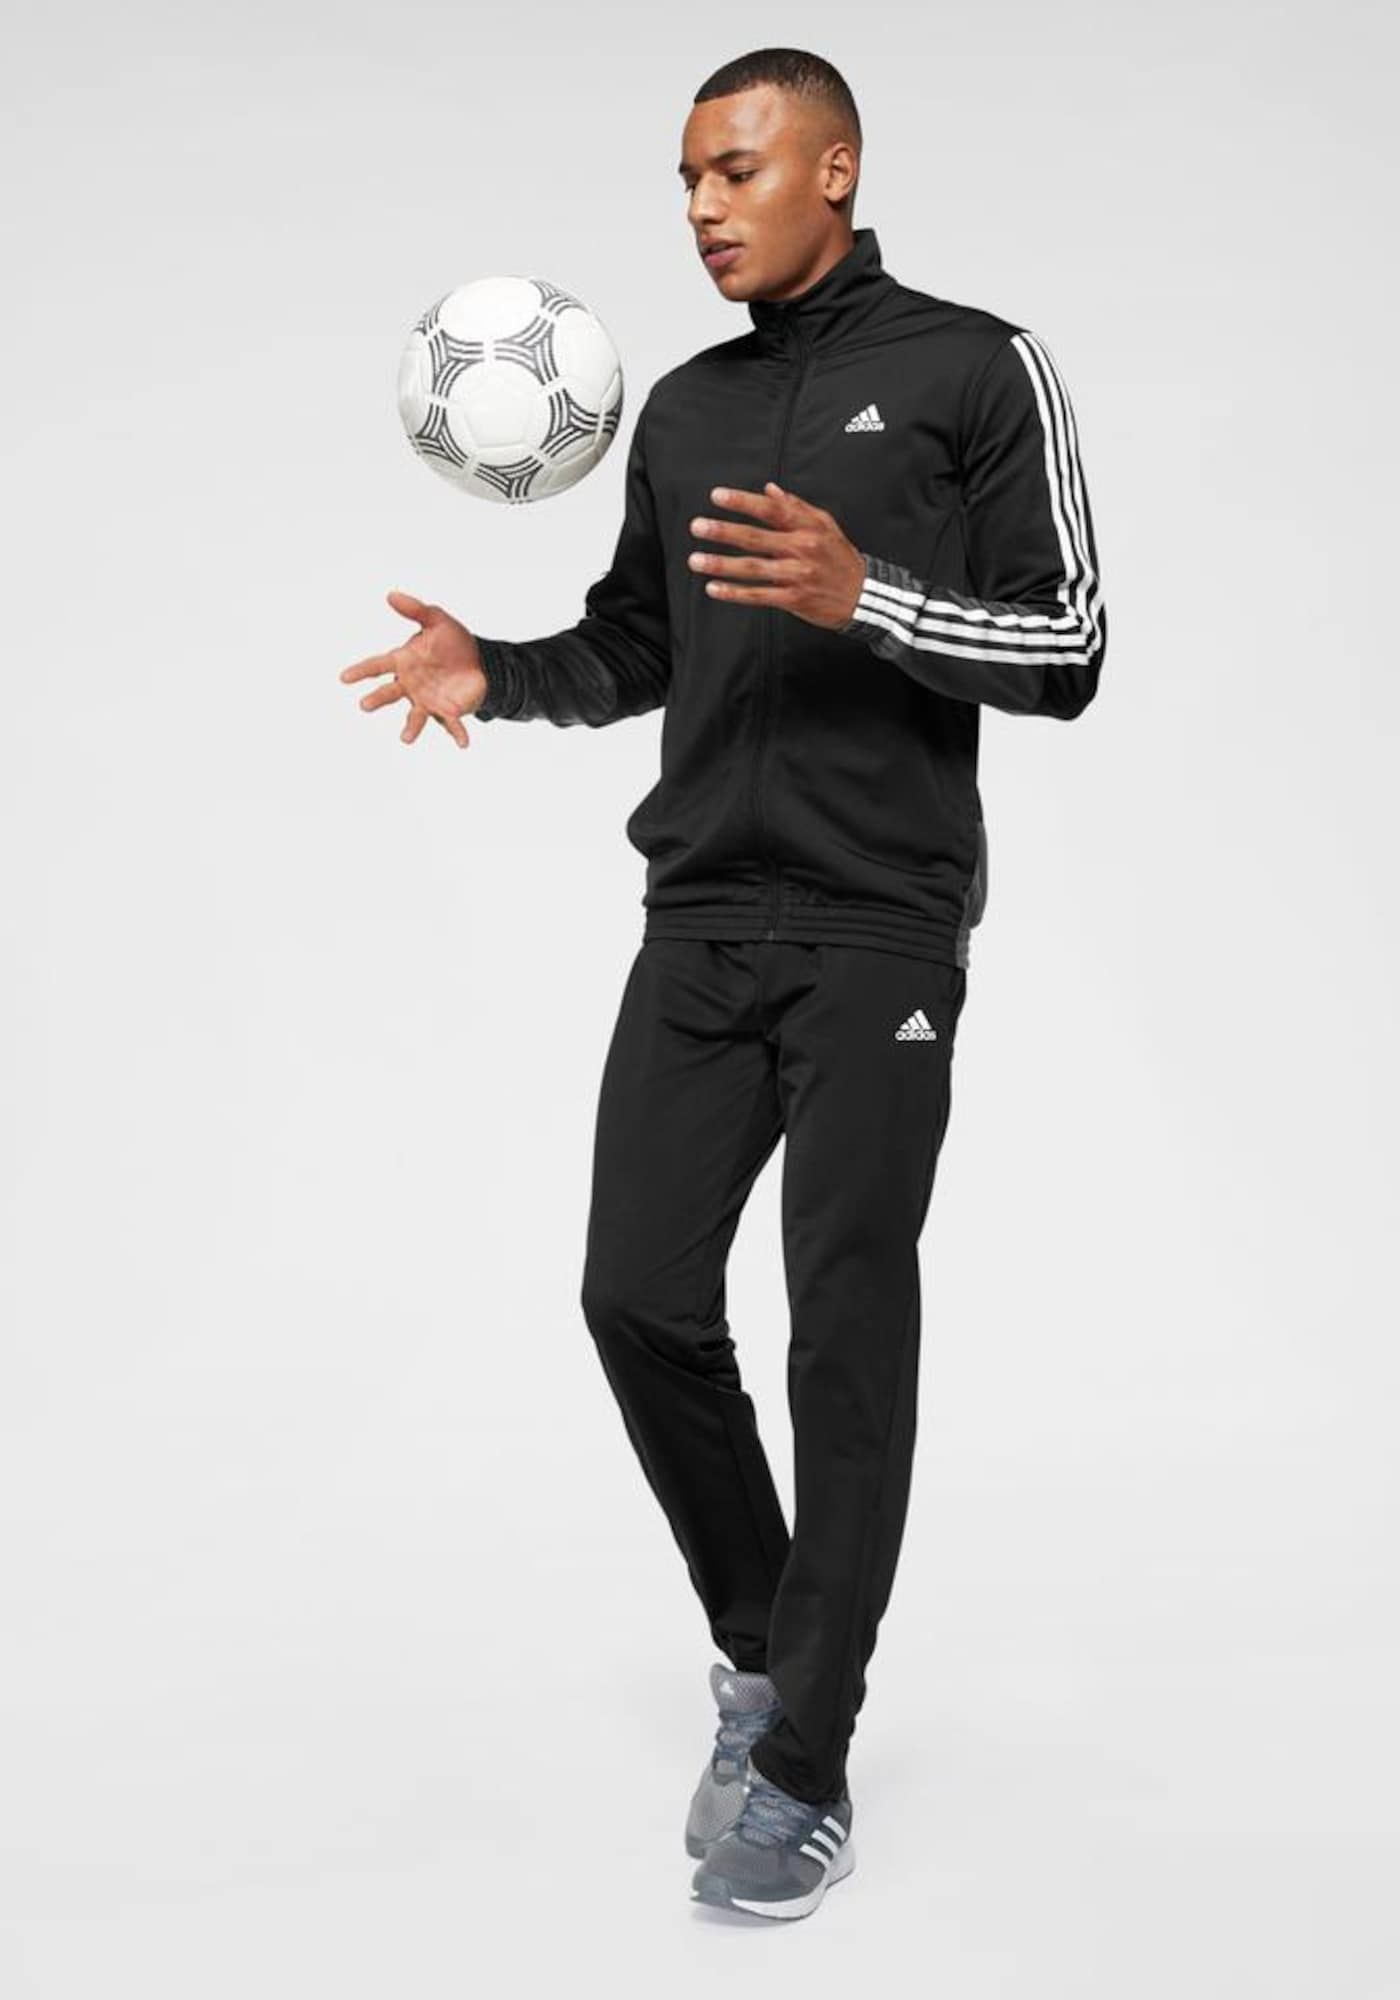 Pin by K M on man style   Adidas outfit, Adidas, Adidas jacket